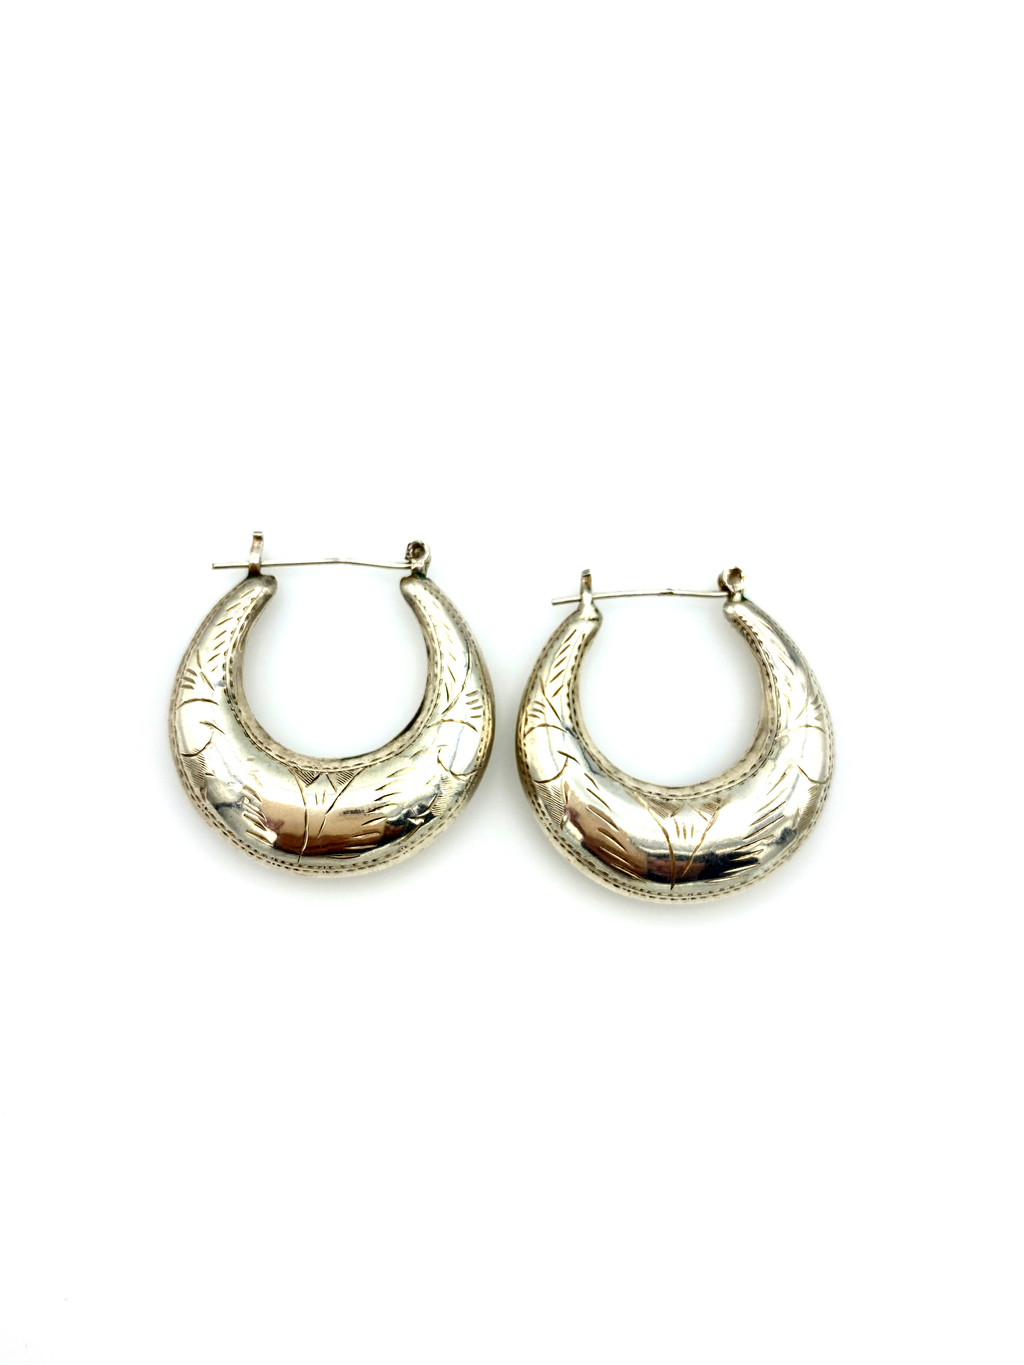 Sterling Silver Puffy Etched Vintage Hoop Pierced Earrings